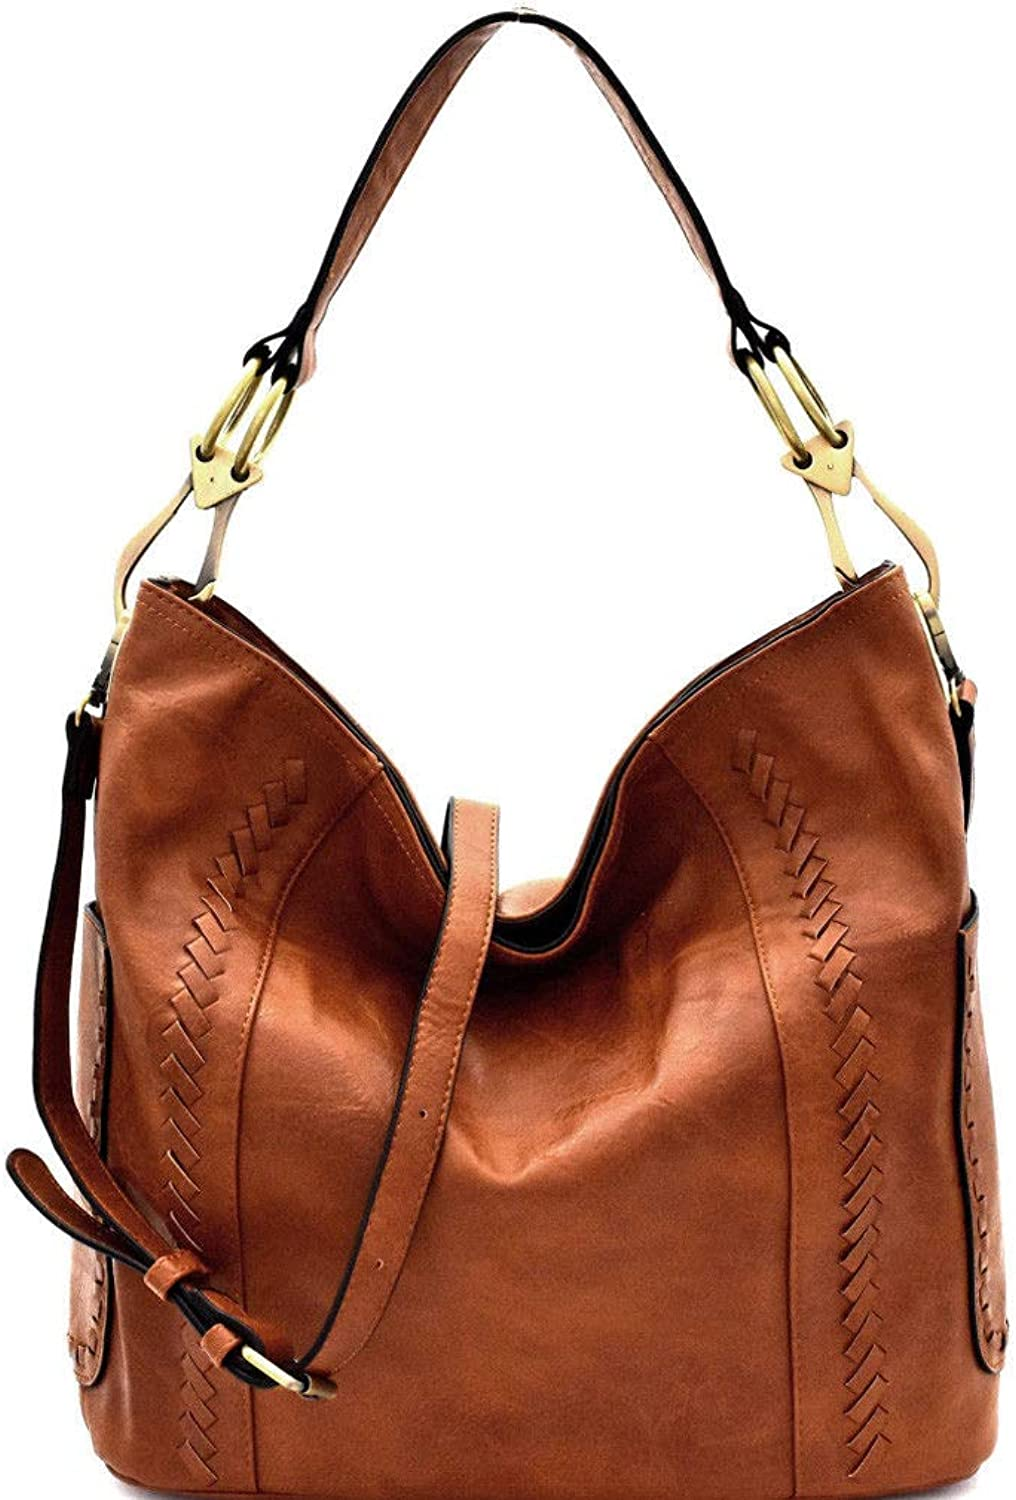 Le Miel Whipstitch Accent ZipTop Hobo w Side Pockets + Strap 7 COLORS